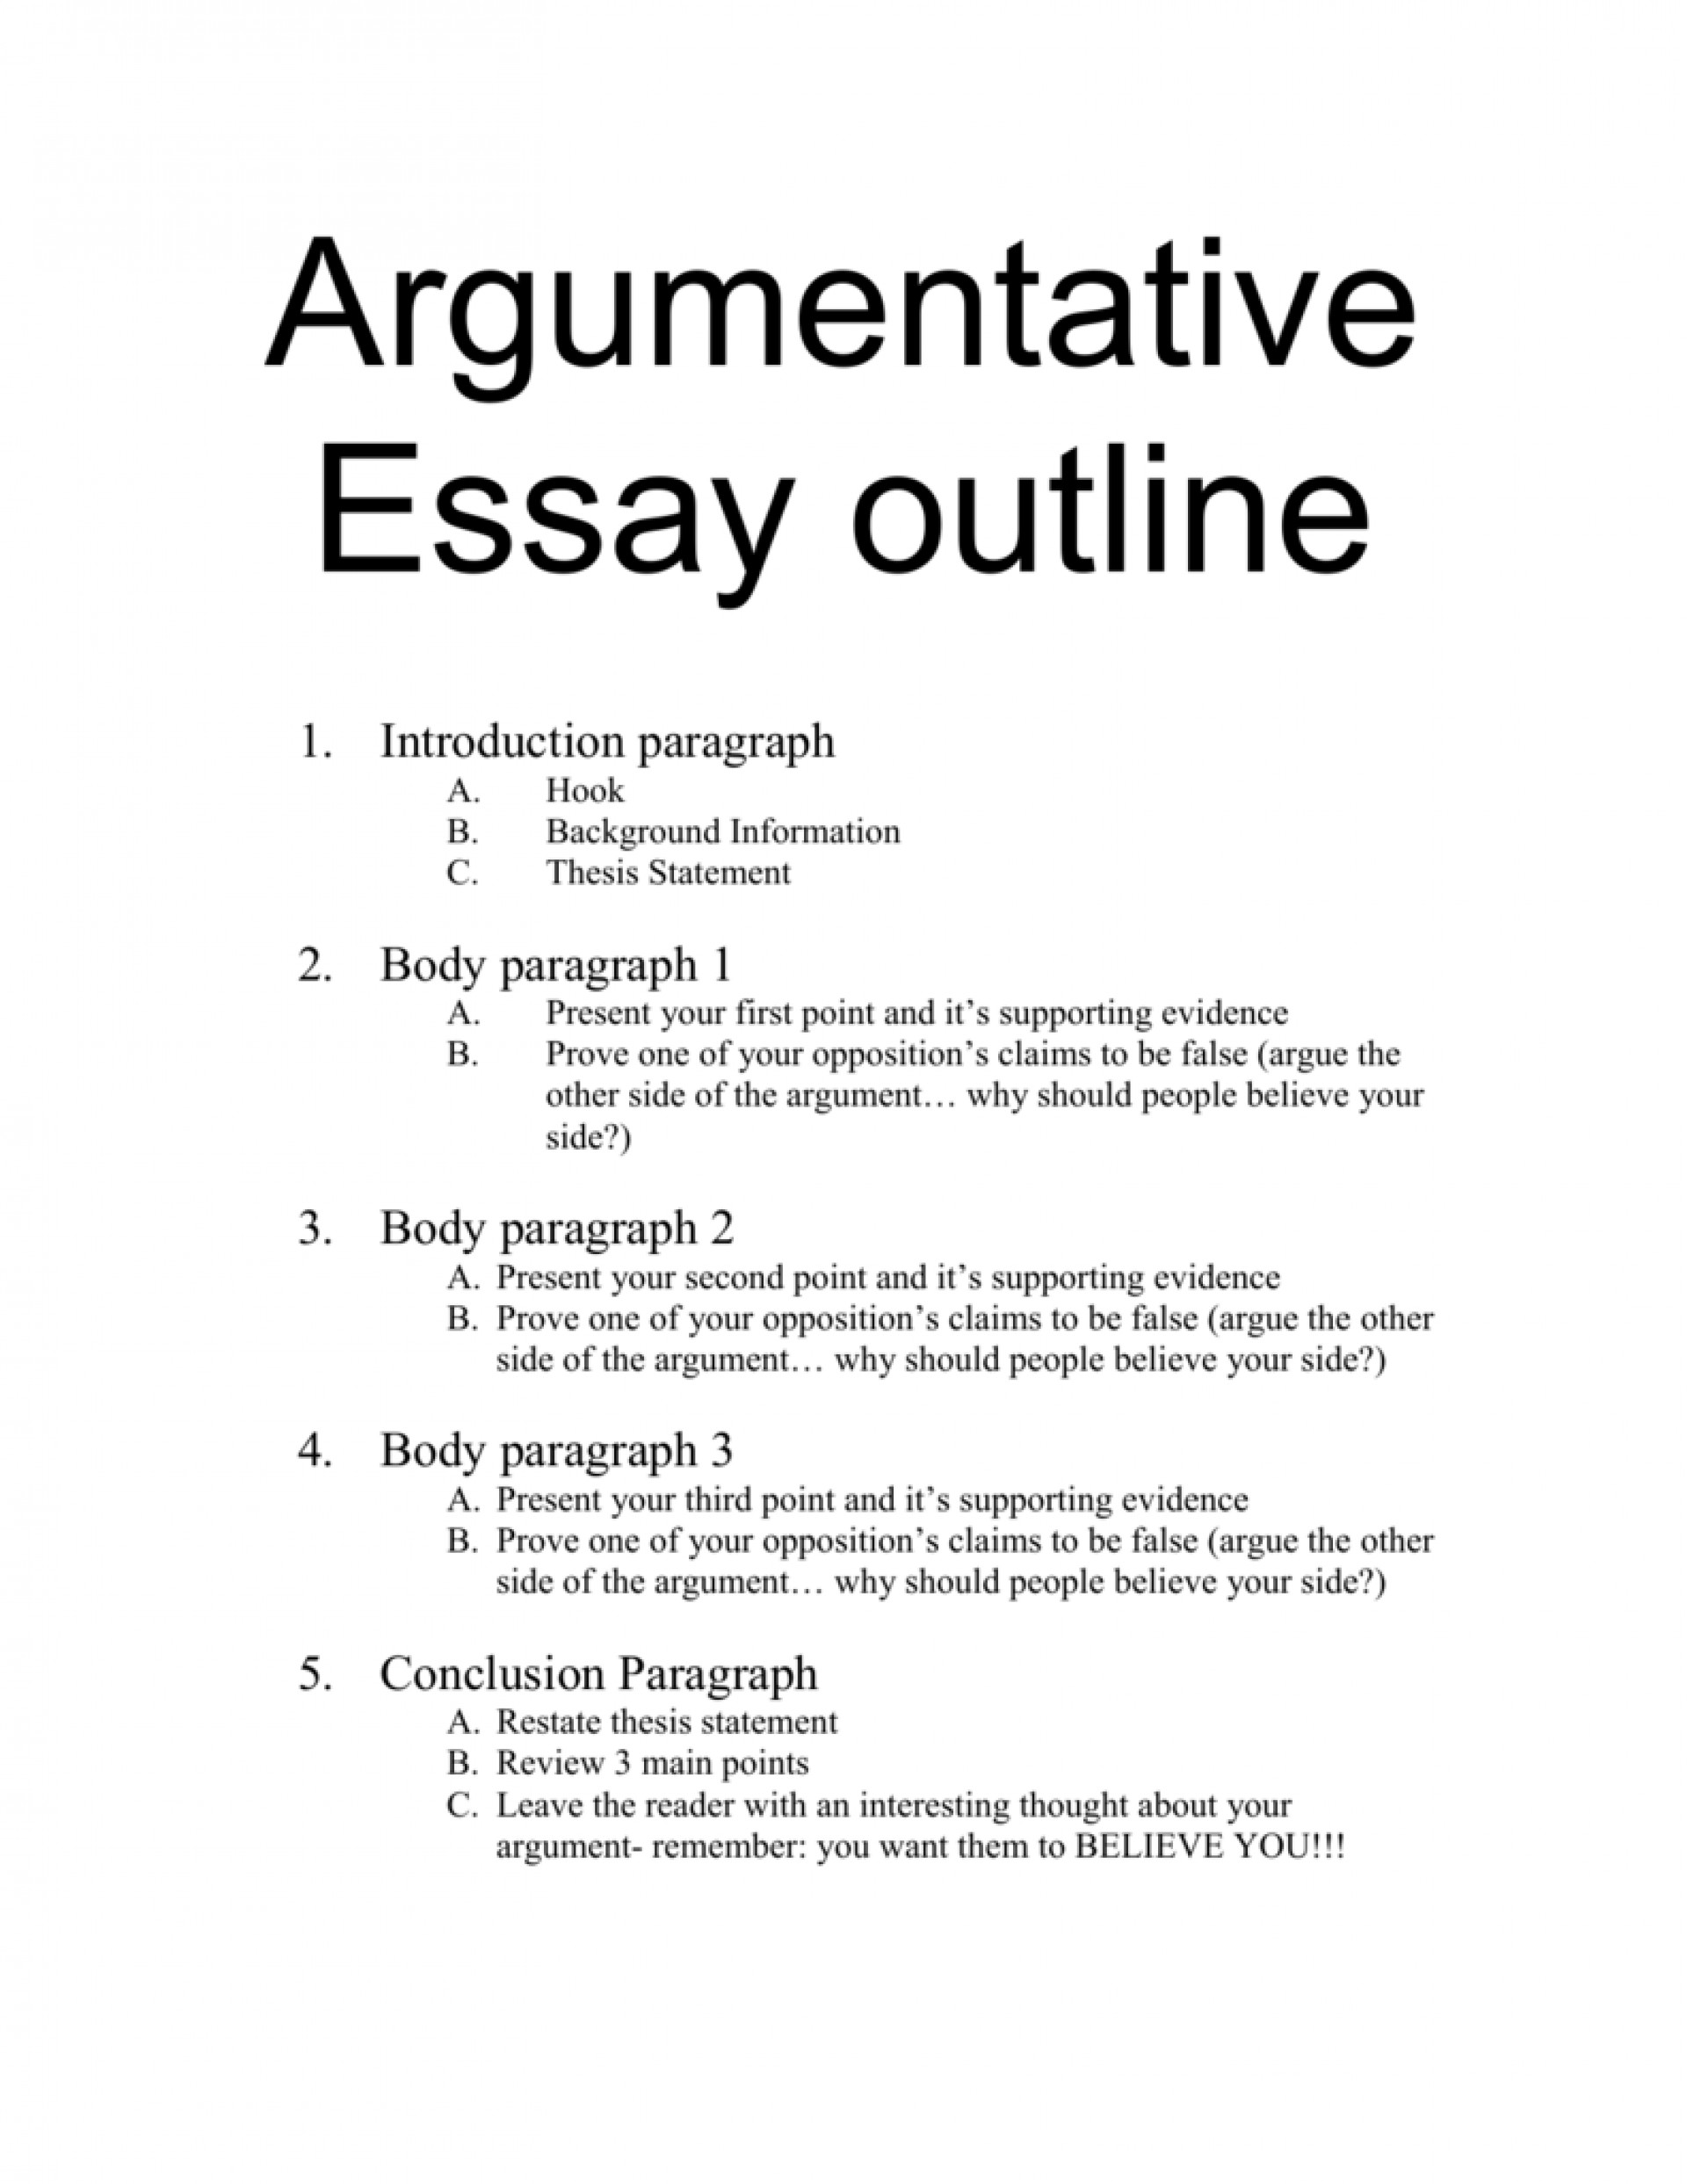 005 The Thesis Statement Or Claim Of An Argumentative Essay Should 009214476 1 Outstanding Quizlet 1920